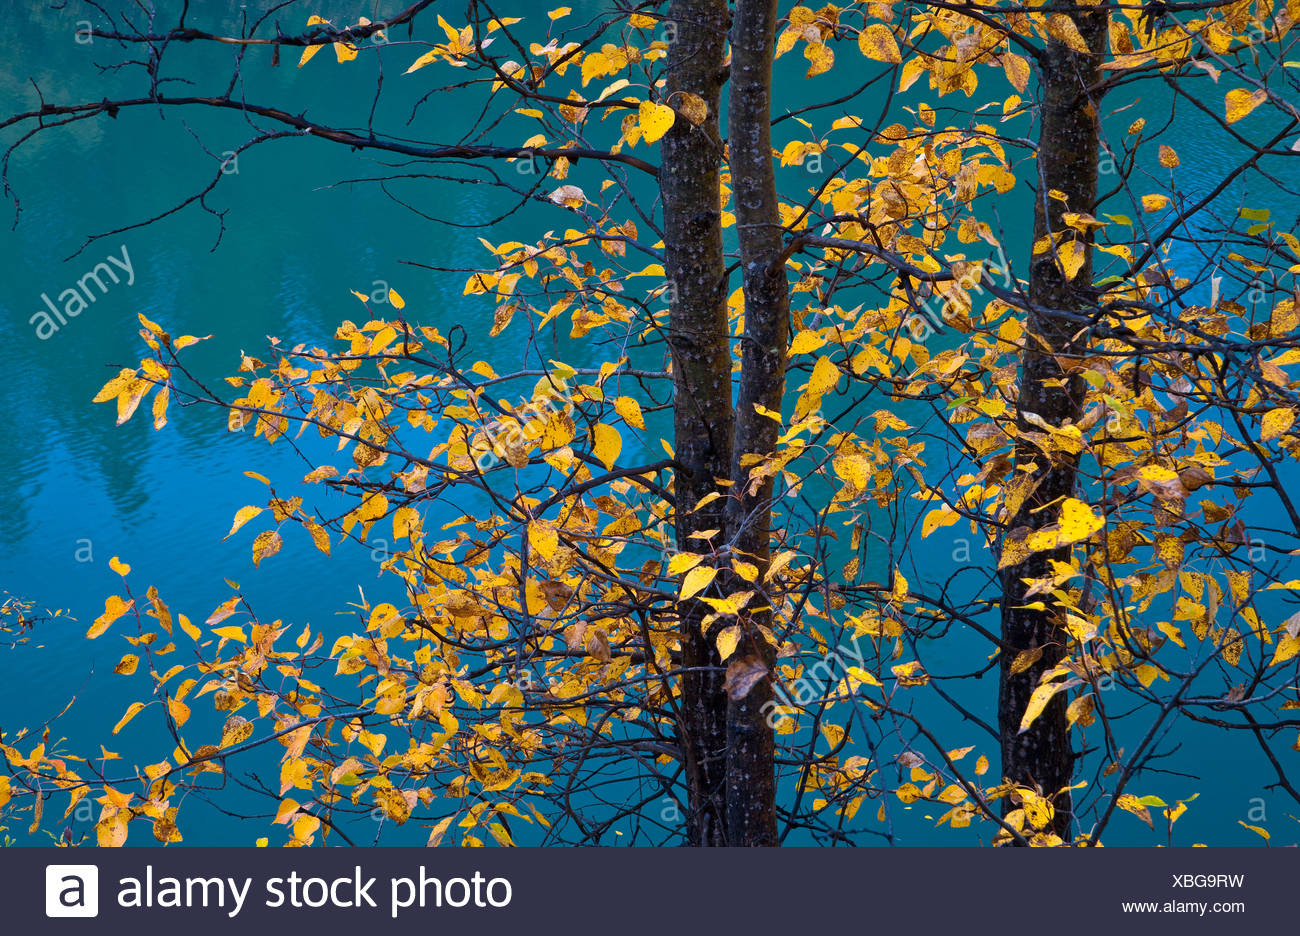 Poplar tree with yellow leaves and Eklutna Lake, Chugach State Park, Southcentral Alaska, Autumn - Stock Image